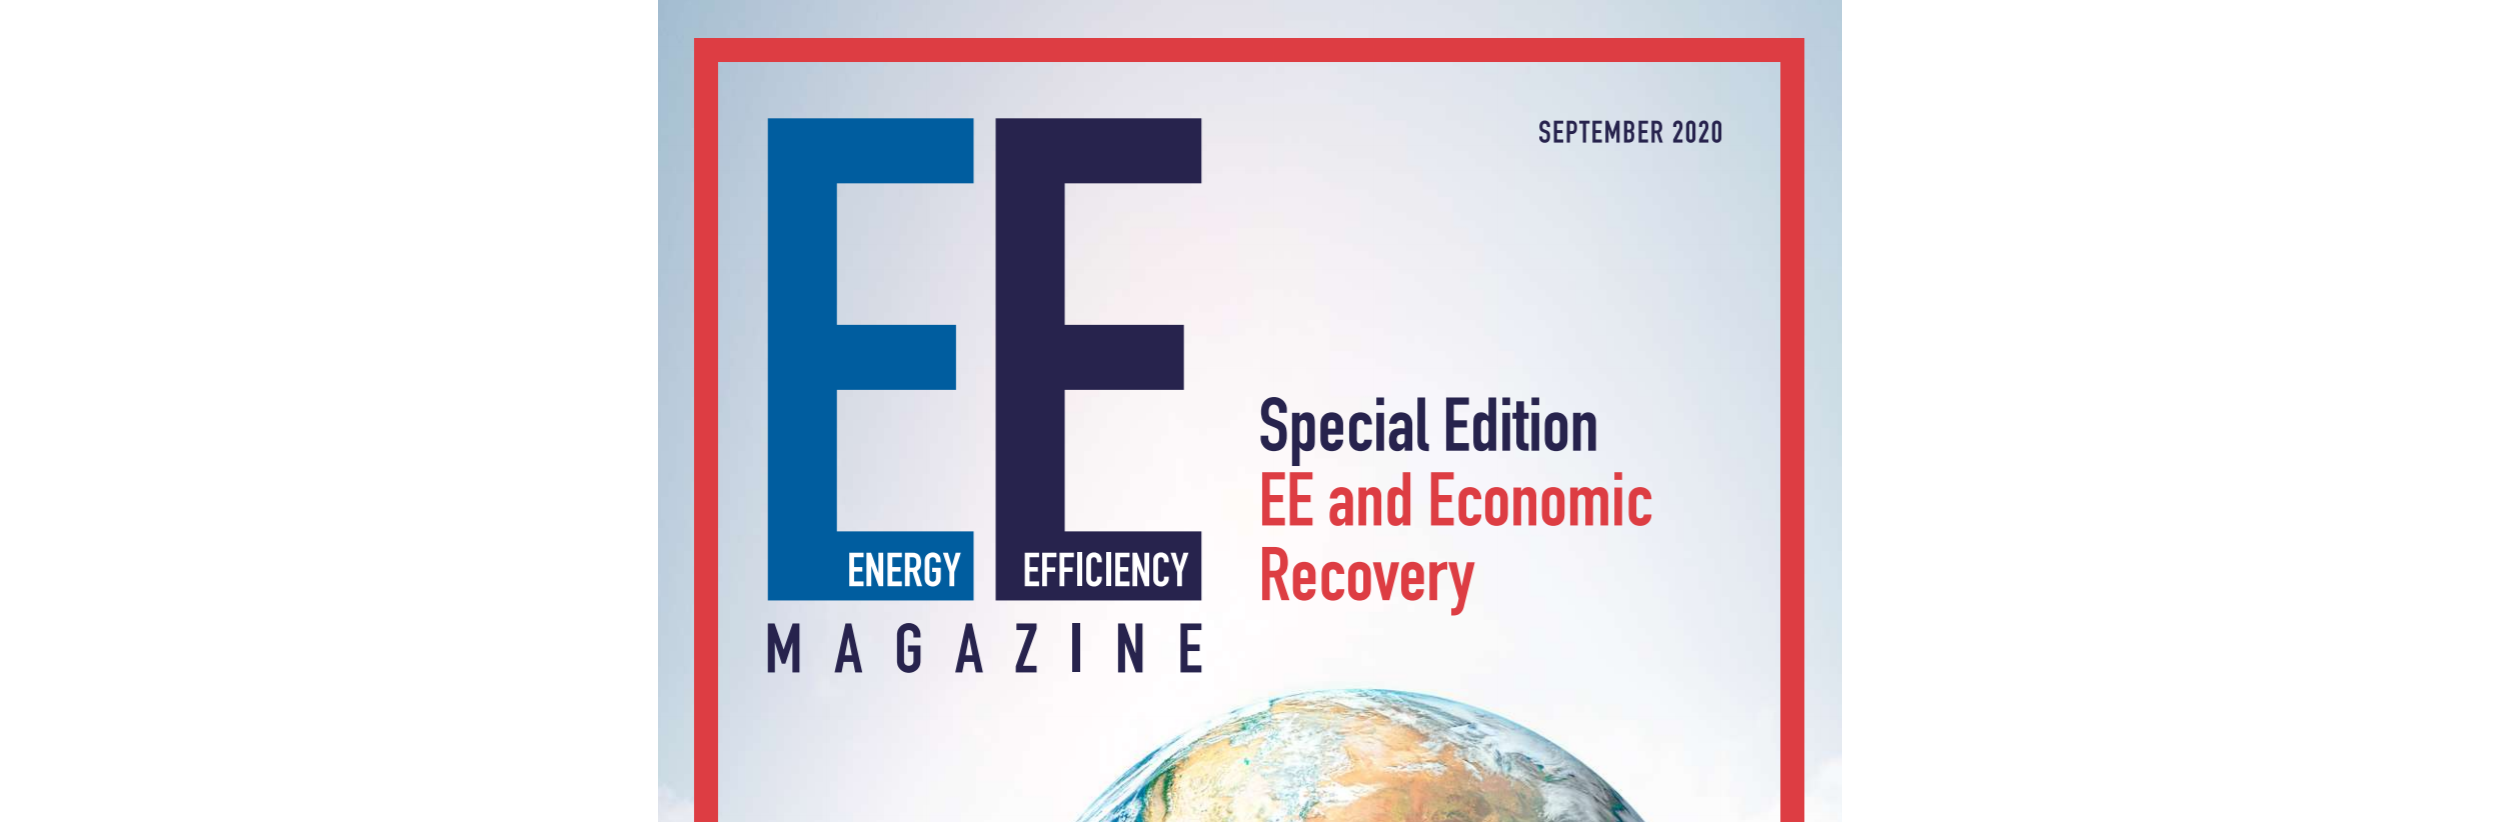 Energy Efficiency Magazine